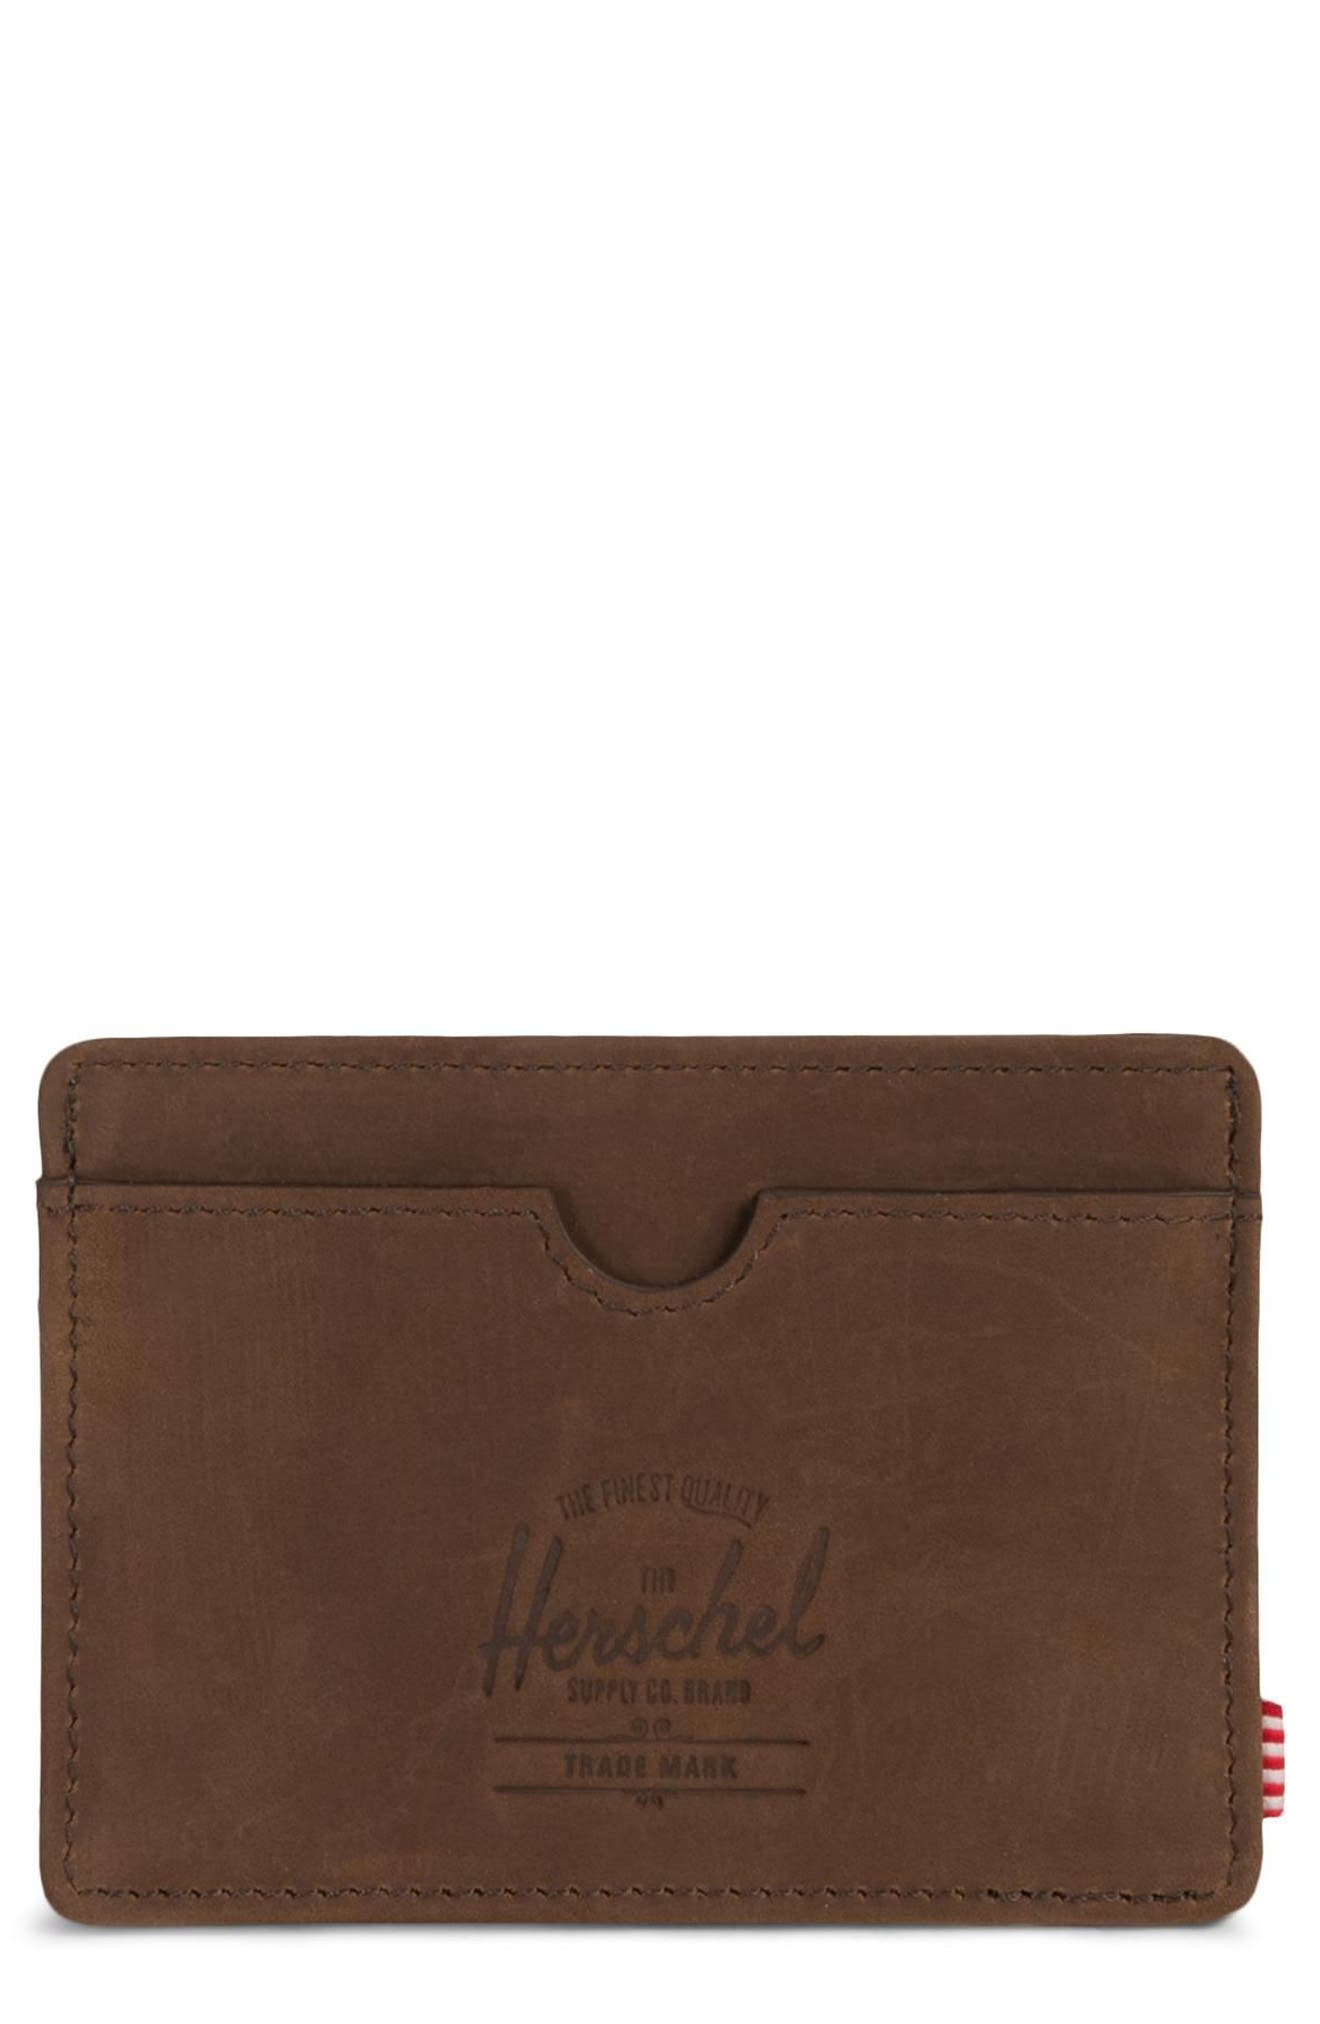 Charlie Nubuck Leather Card Case,                         Main,                         color, NUBUCK BROWN